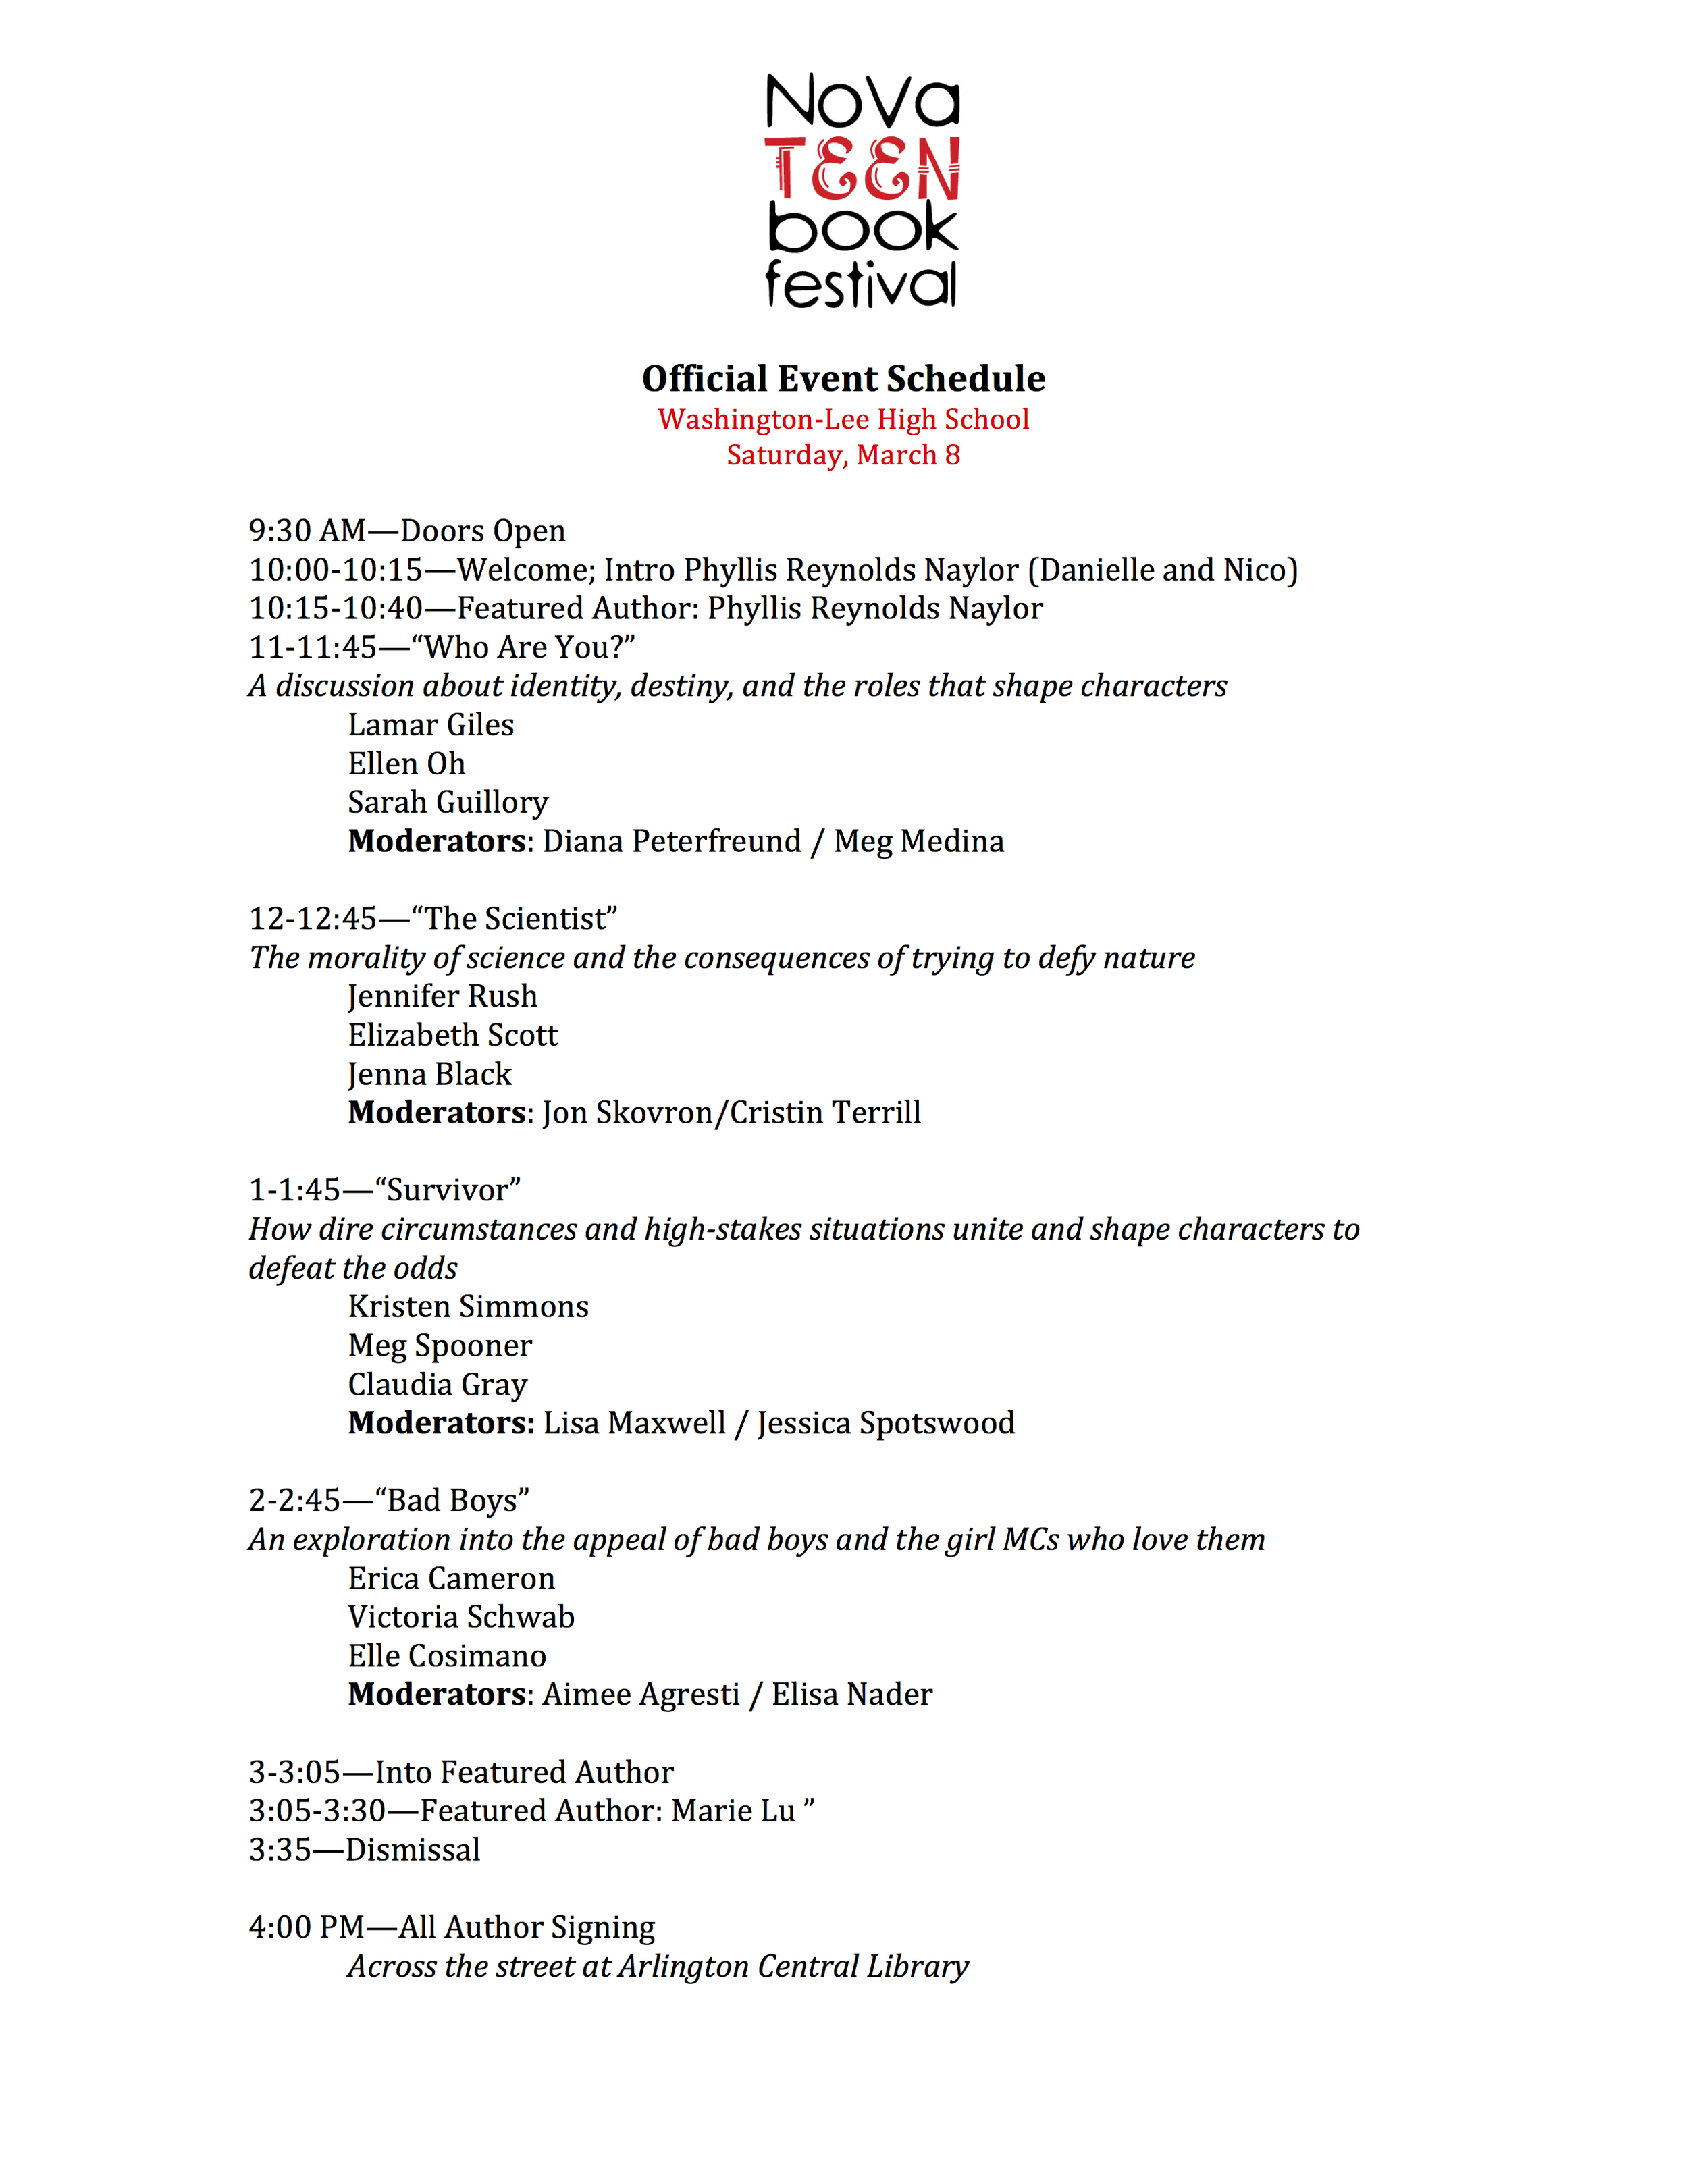 NTBF Official Event Schedule.jpg